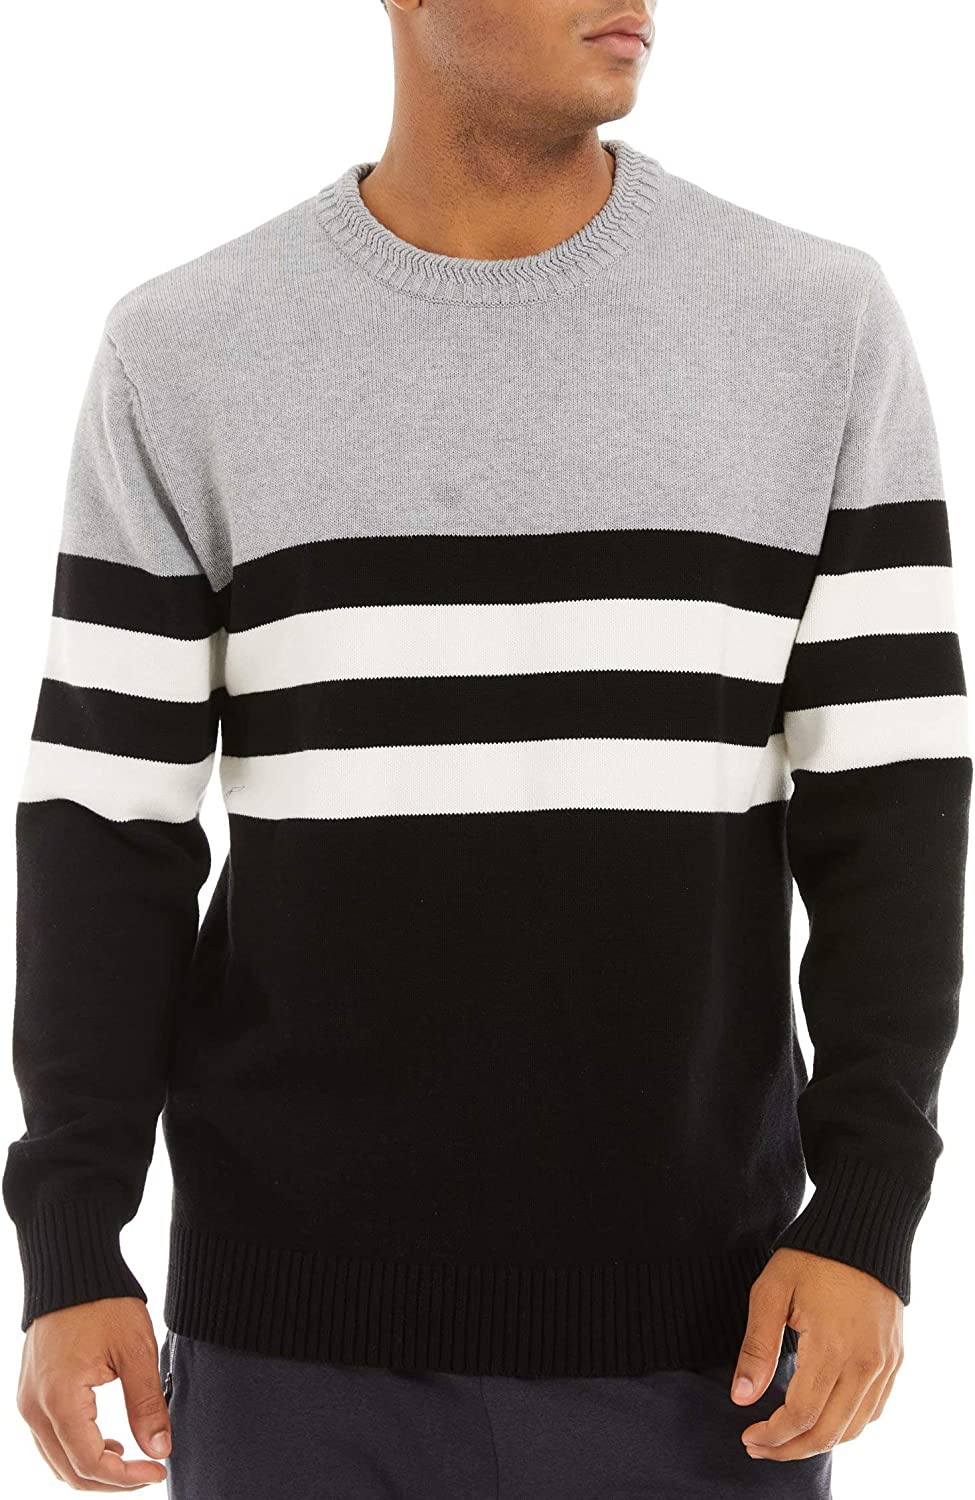 MAGCOMSEN Men's Crewneck Sweater Thermal Soldering Louisville-Jefferson County Mall Soft Sweatshirt Knitted